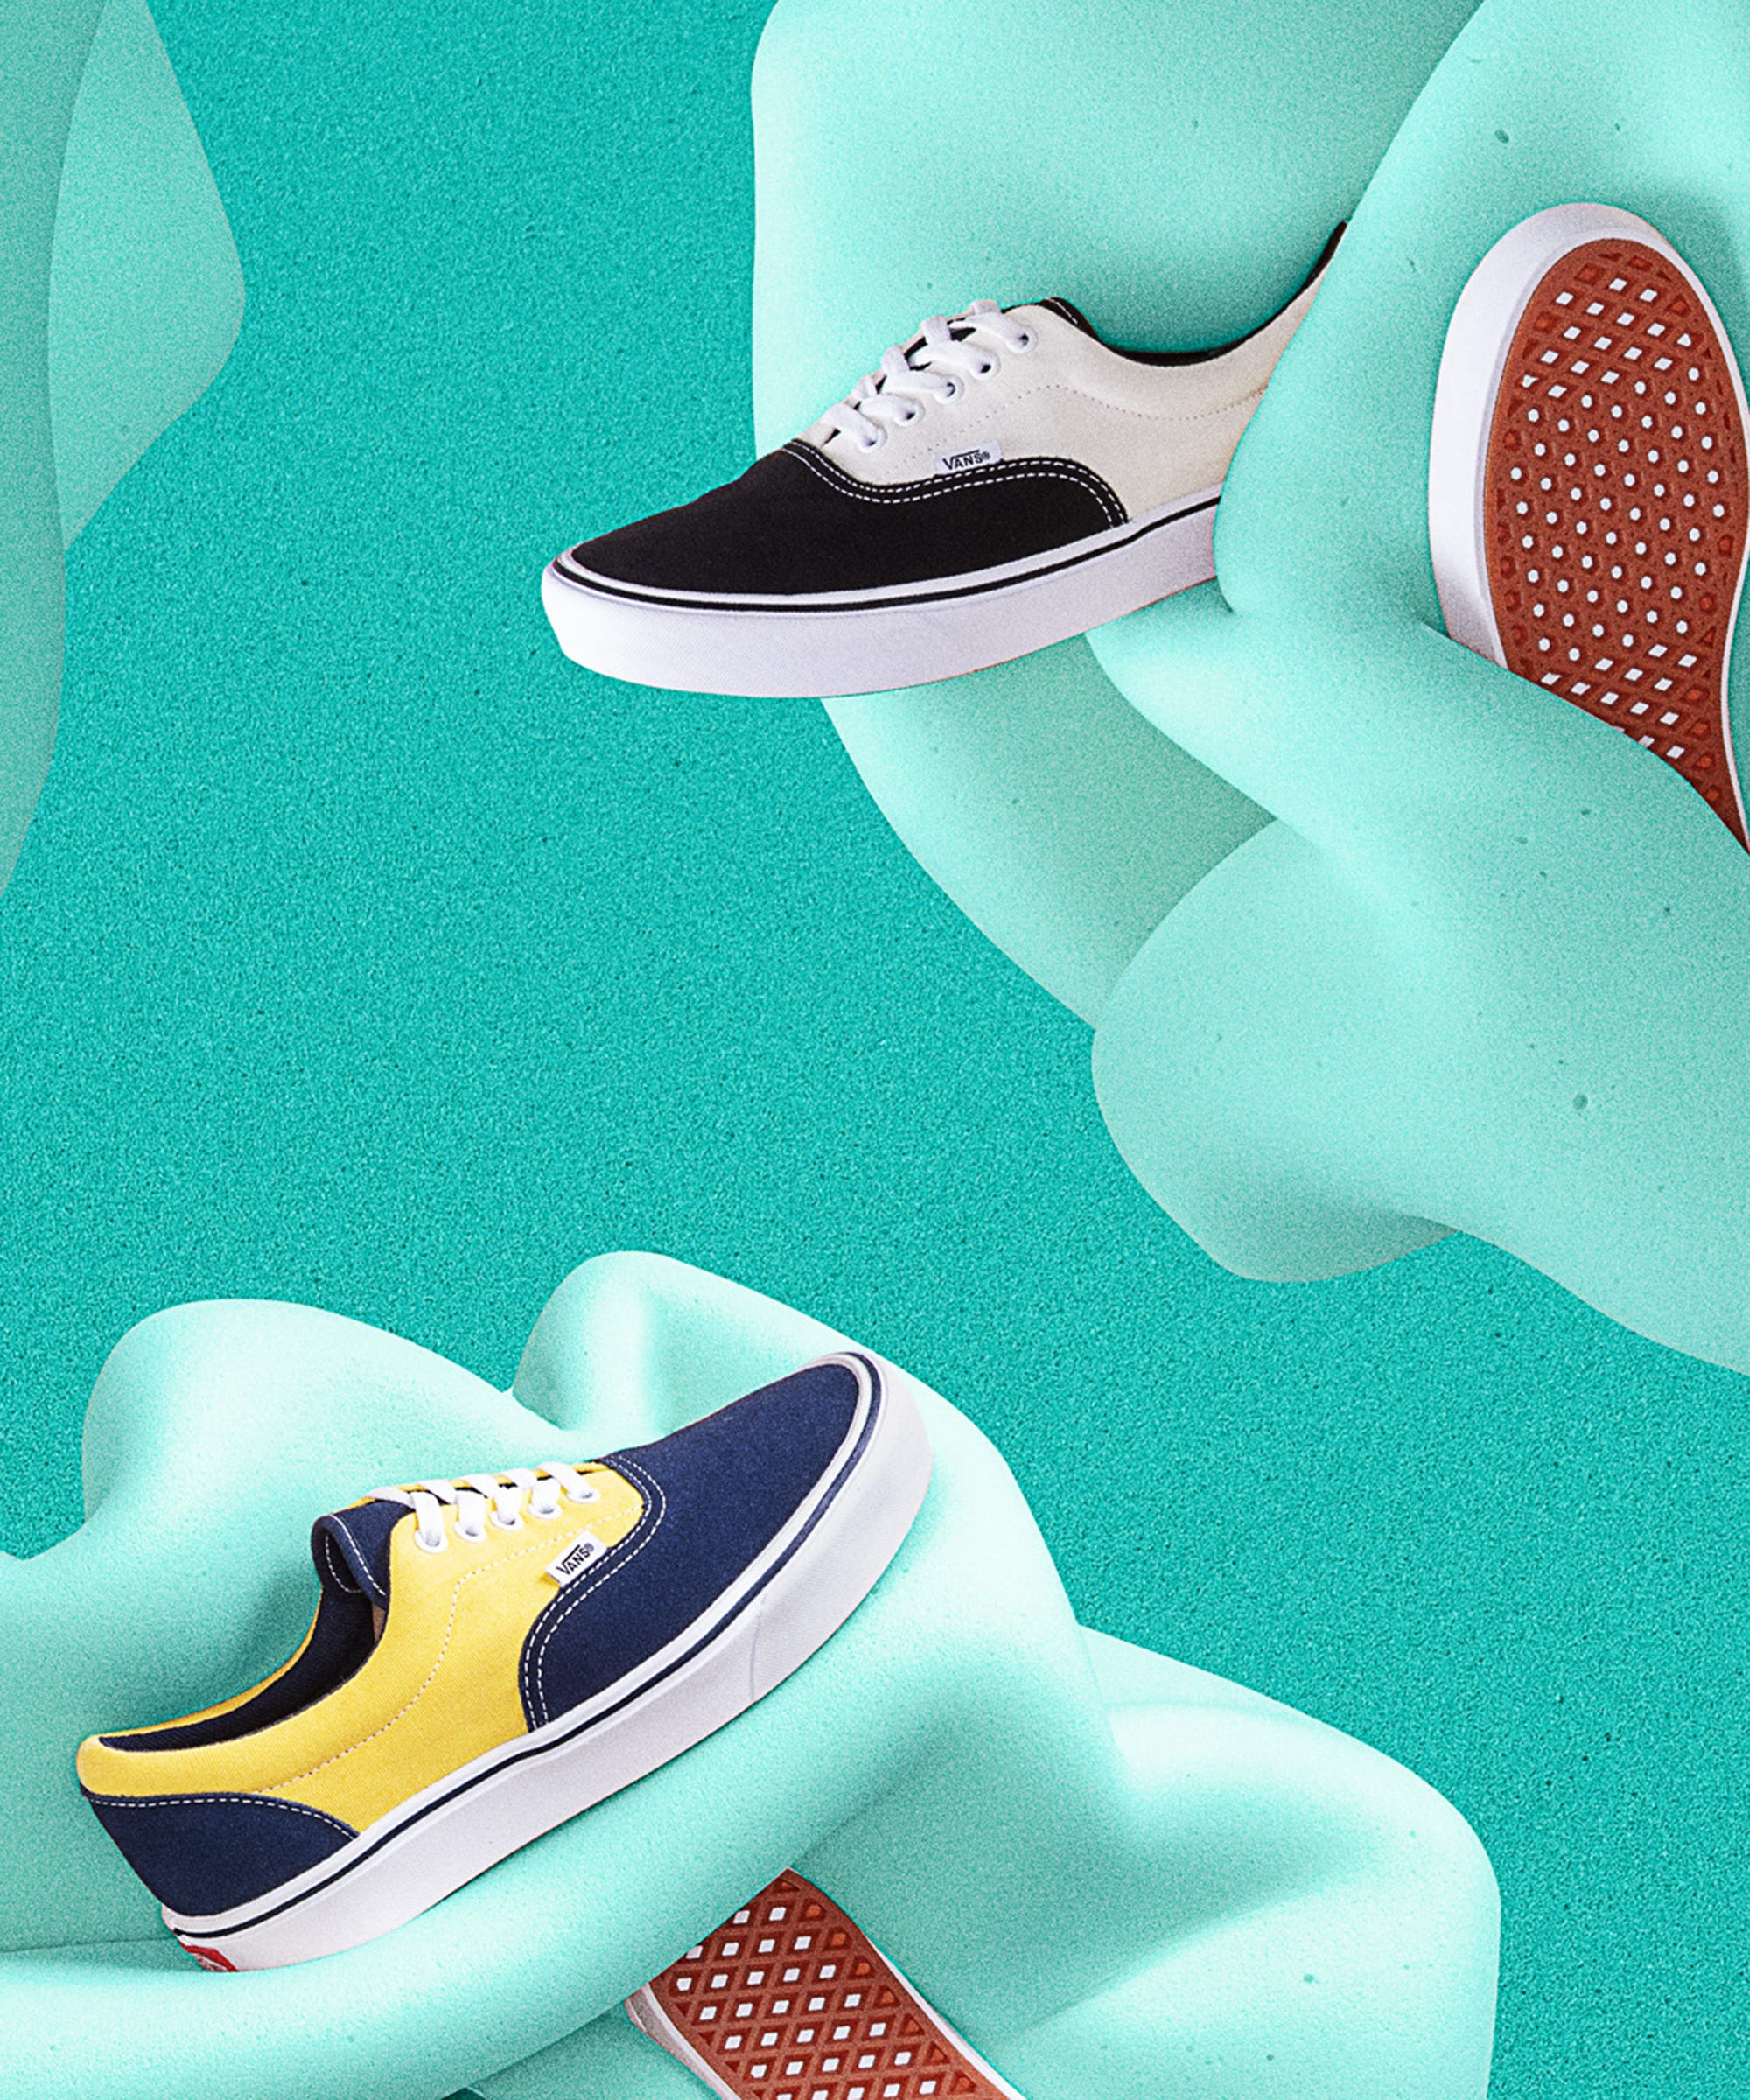 New Vans Comfy Cush Shoes Add Comfort To Classic Styles